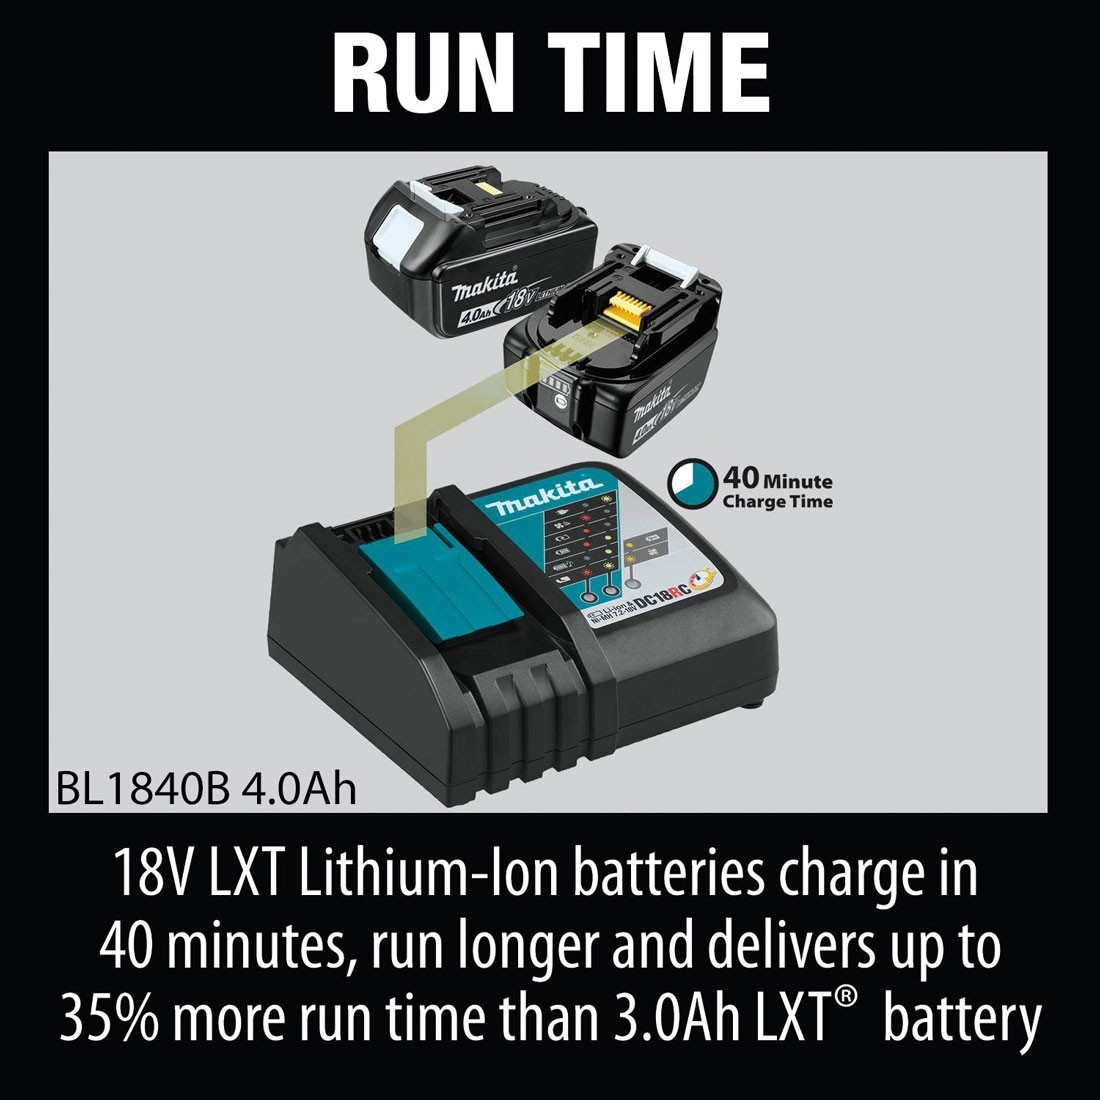 Makita DC18RC 18v LXT Li-Ion Fast Battery Charger 7.2 / 14.4 / 18v on